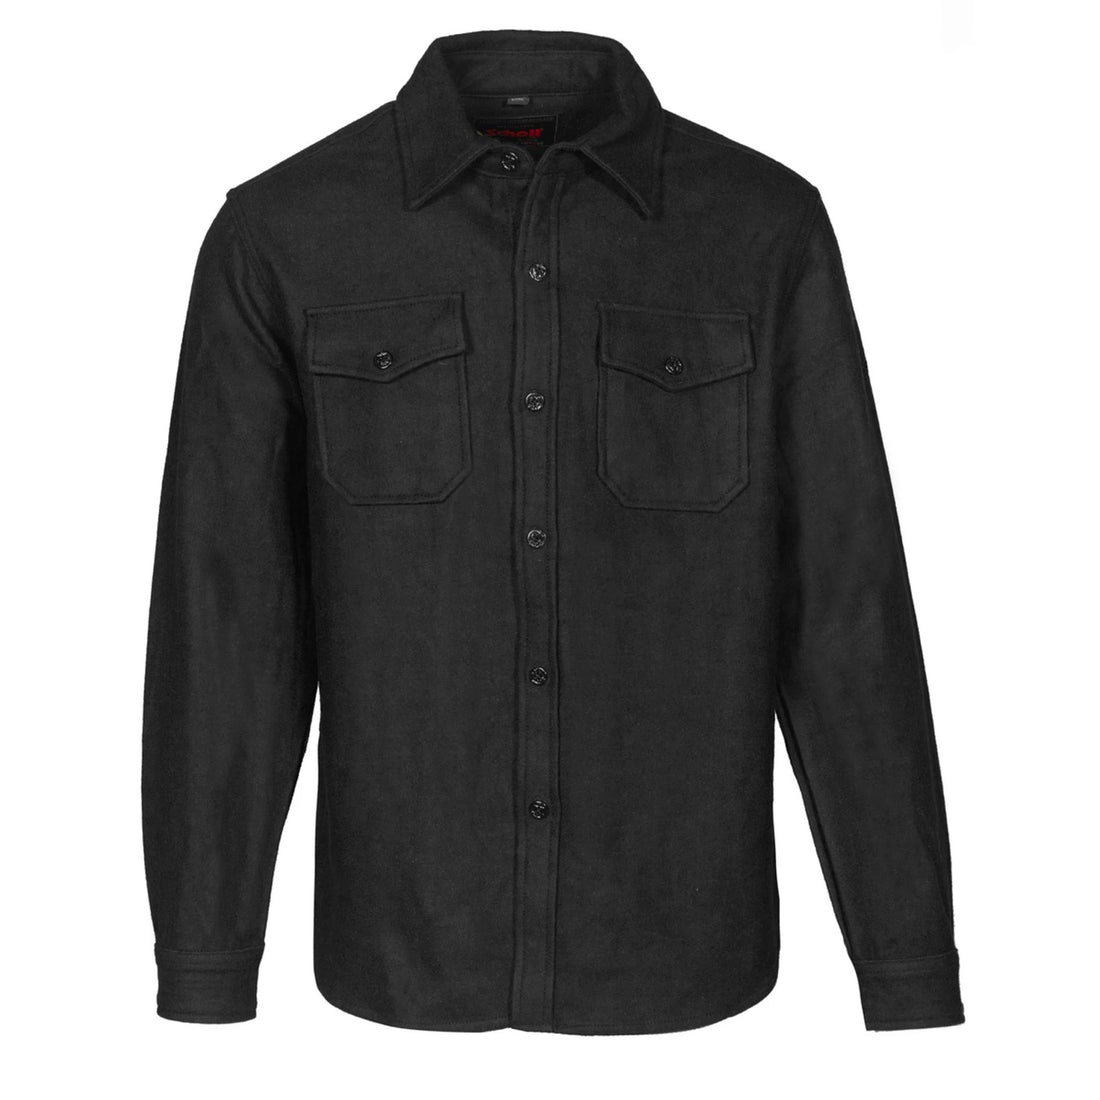 Wool CPO Shirt Jacket - Apparel: Men's: Outerwear - Iron and Resin